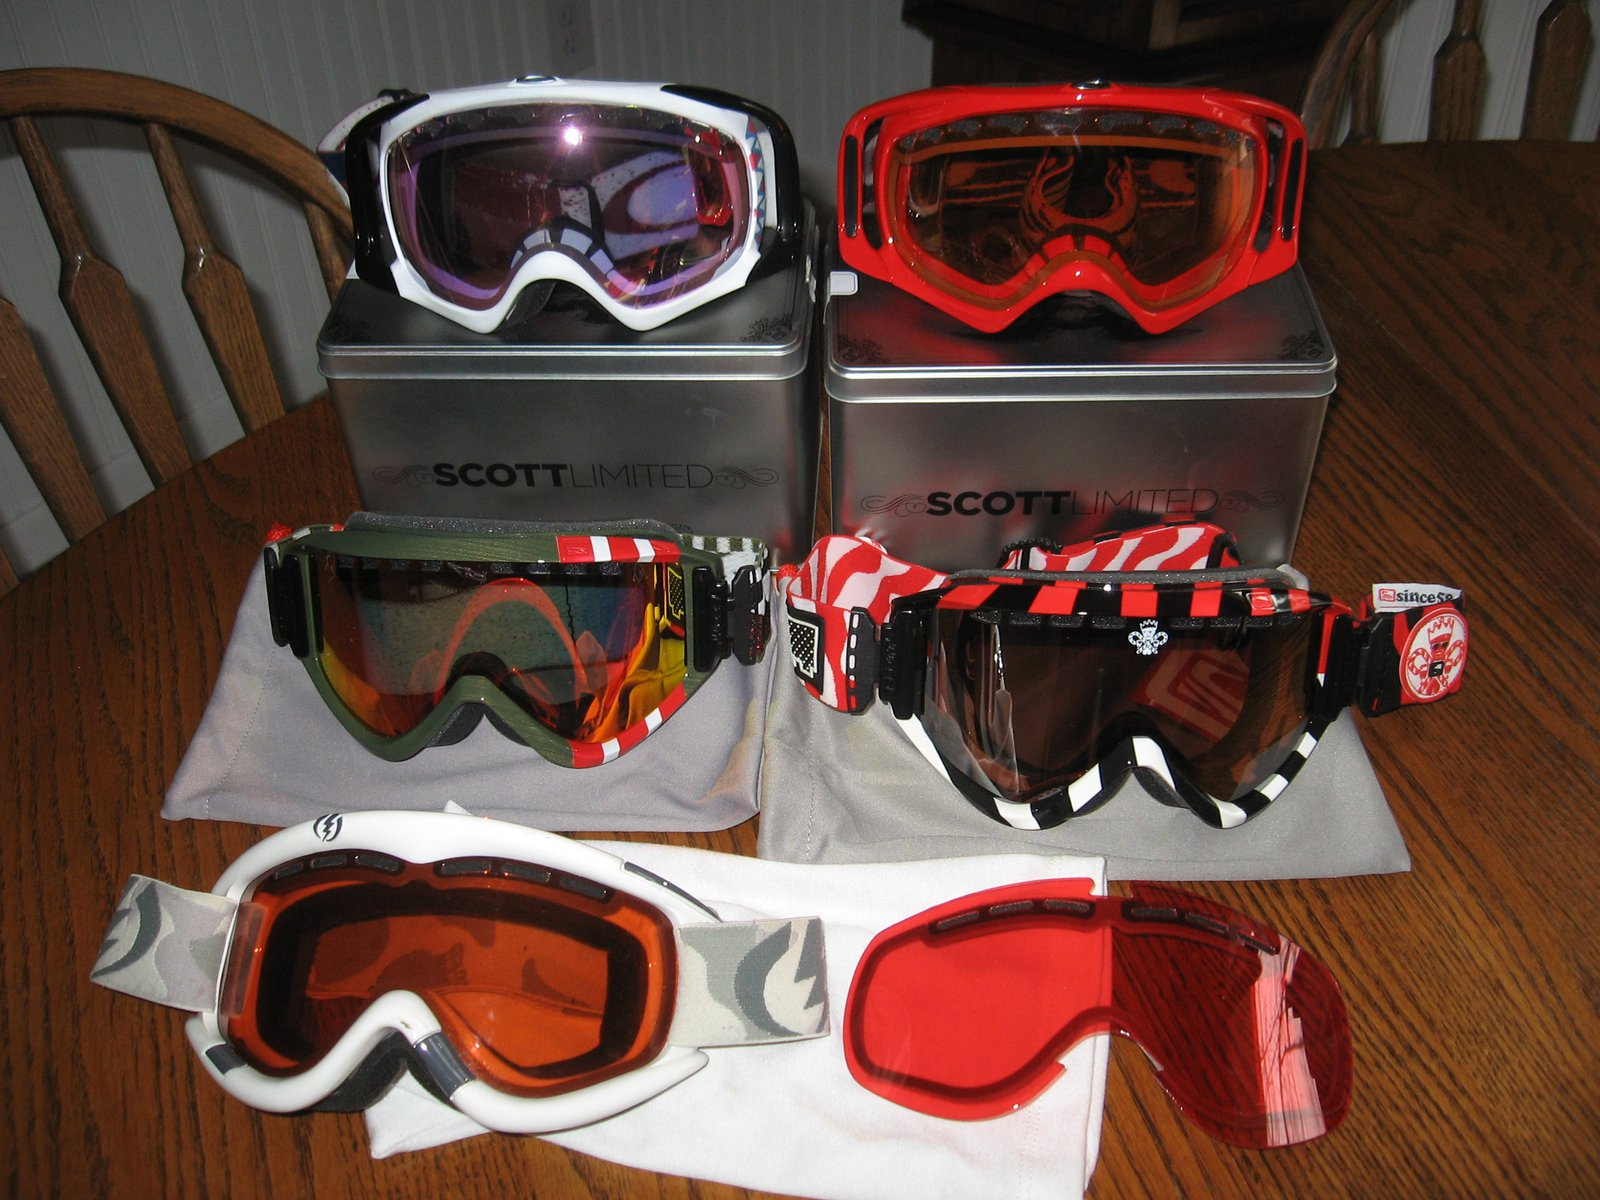 All the goggles